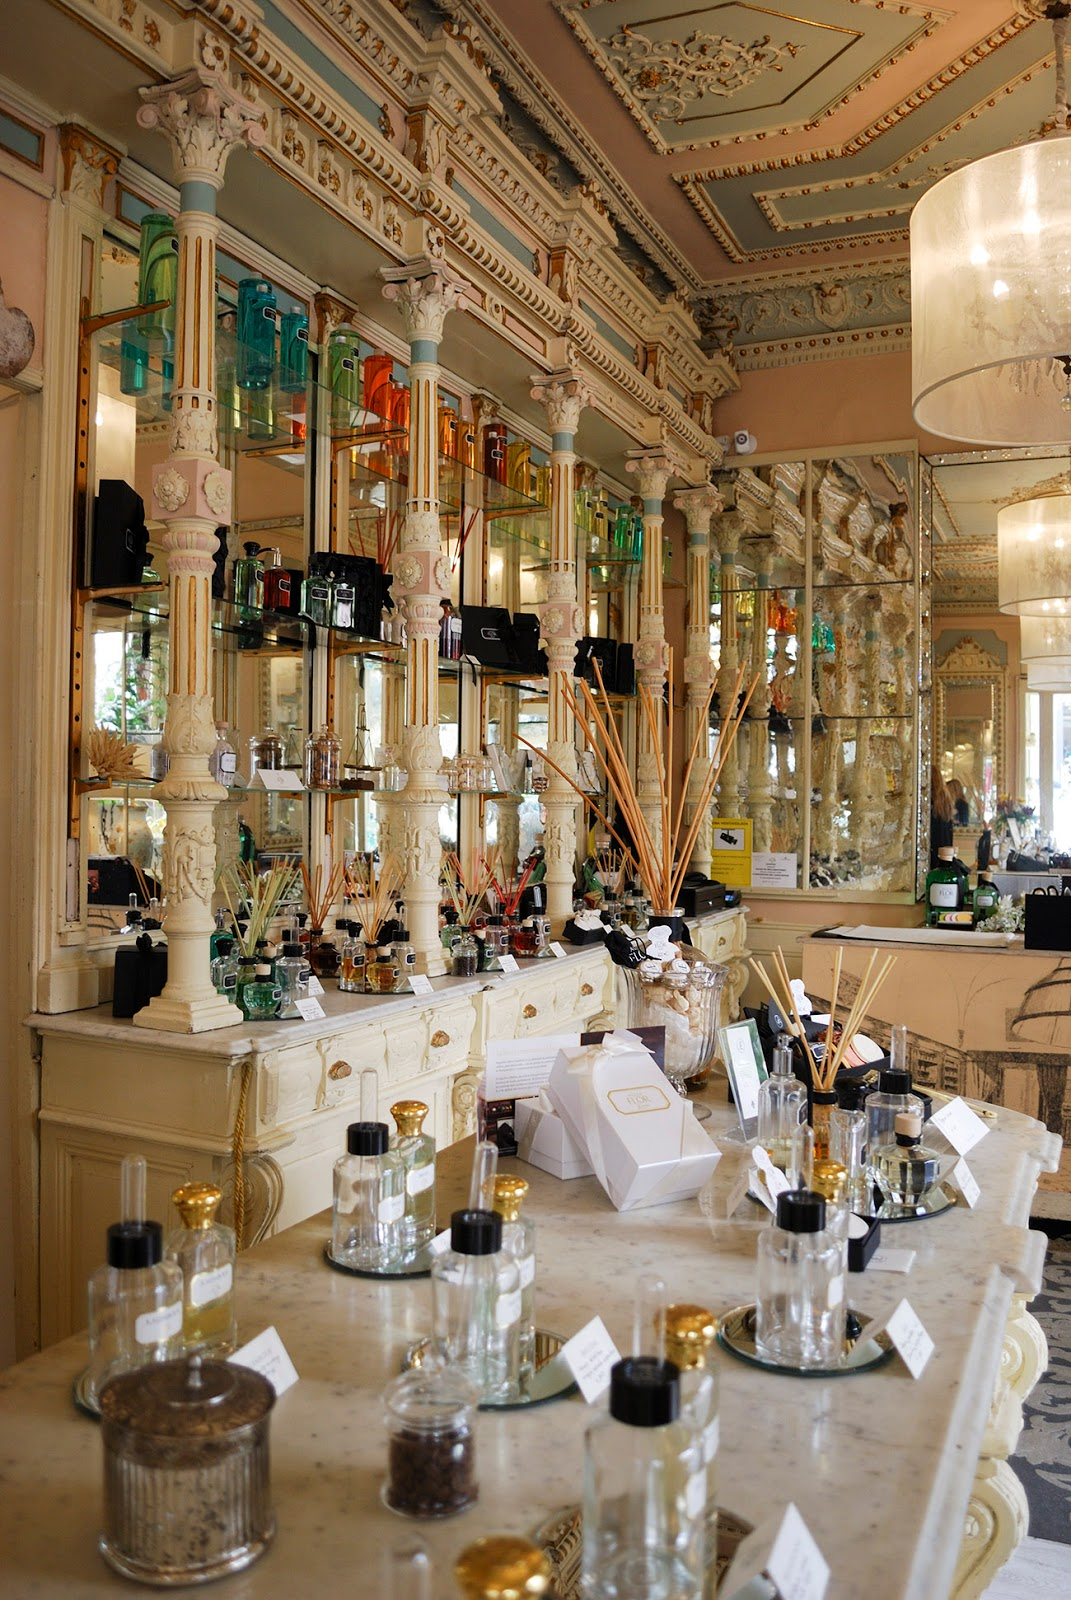 perfume store madrid tienda historica arte decoracion exclusive custom fragrance spain españa